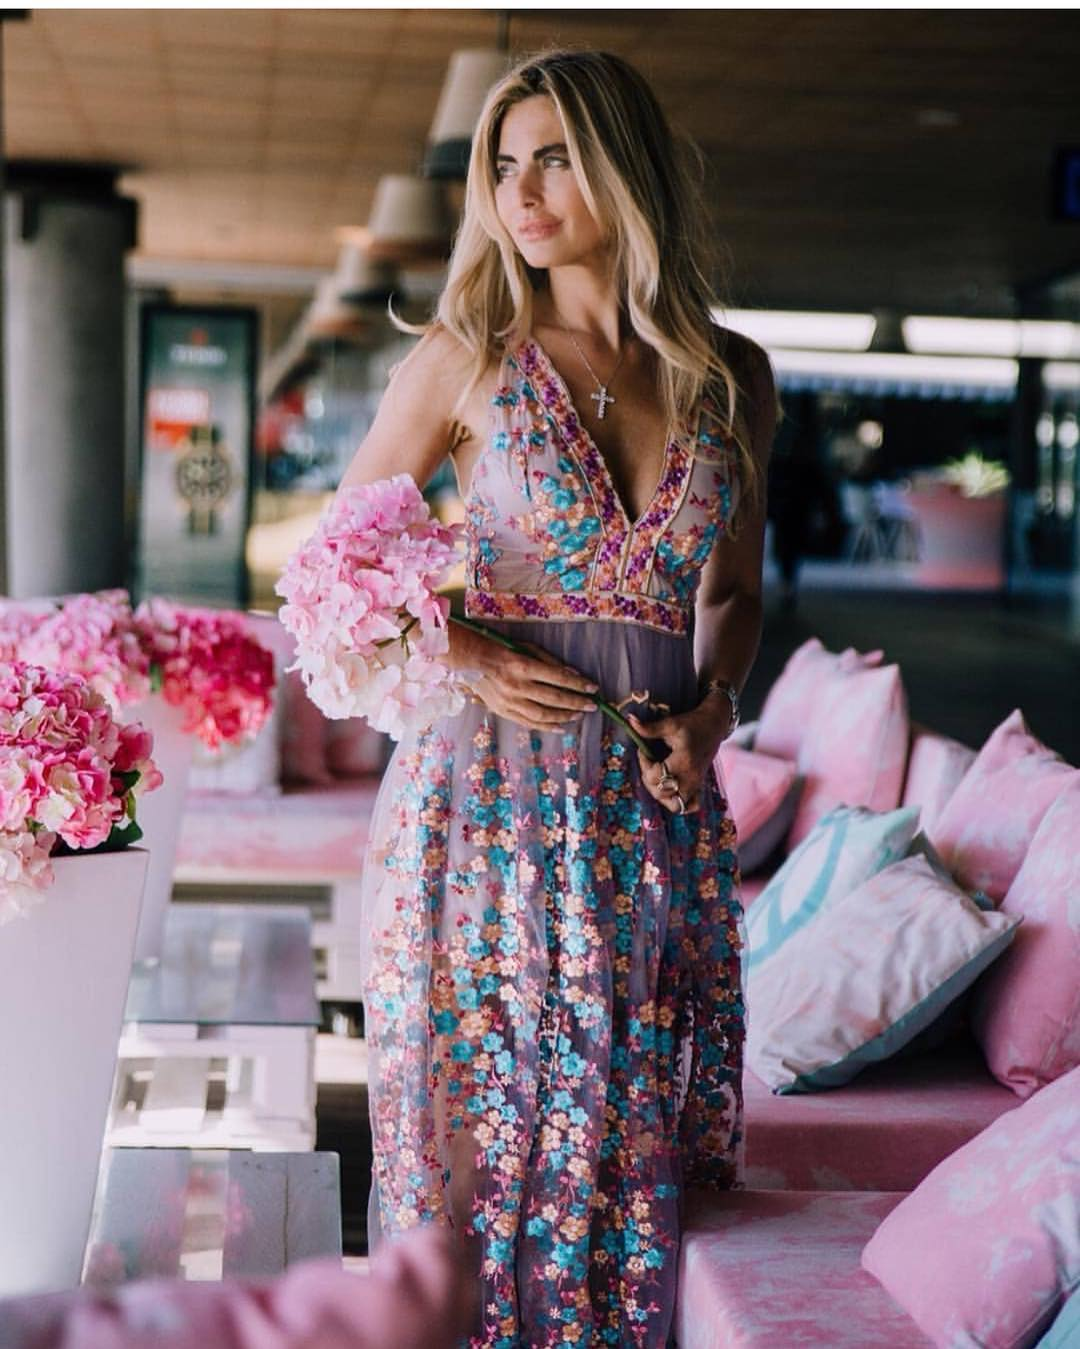 Pastel Purple Semi-Sheer Dress In Embroidered Florals For Summer Vacation 2020